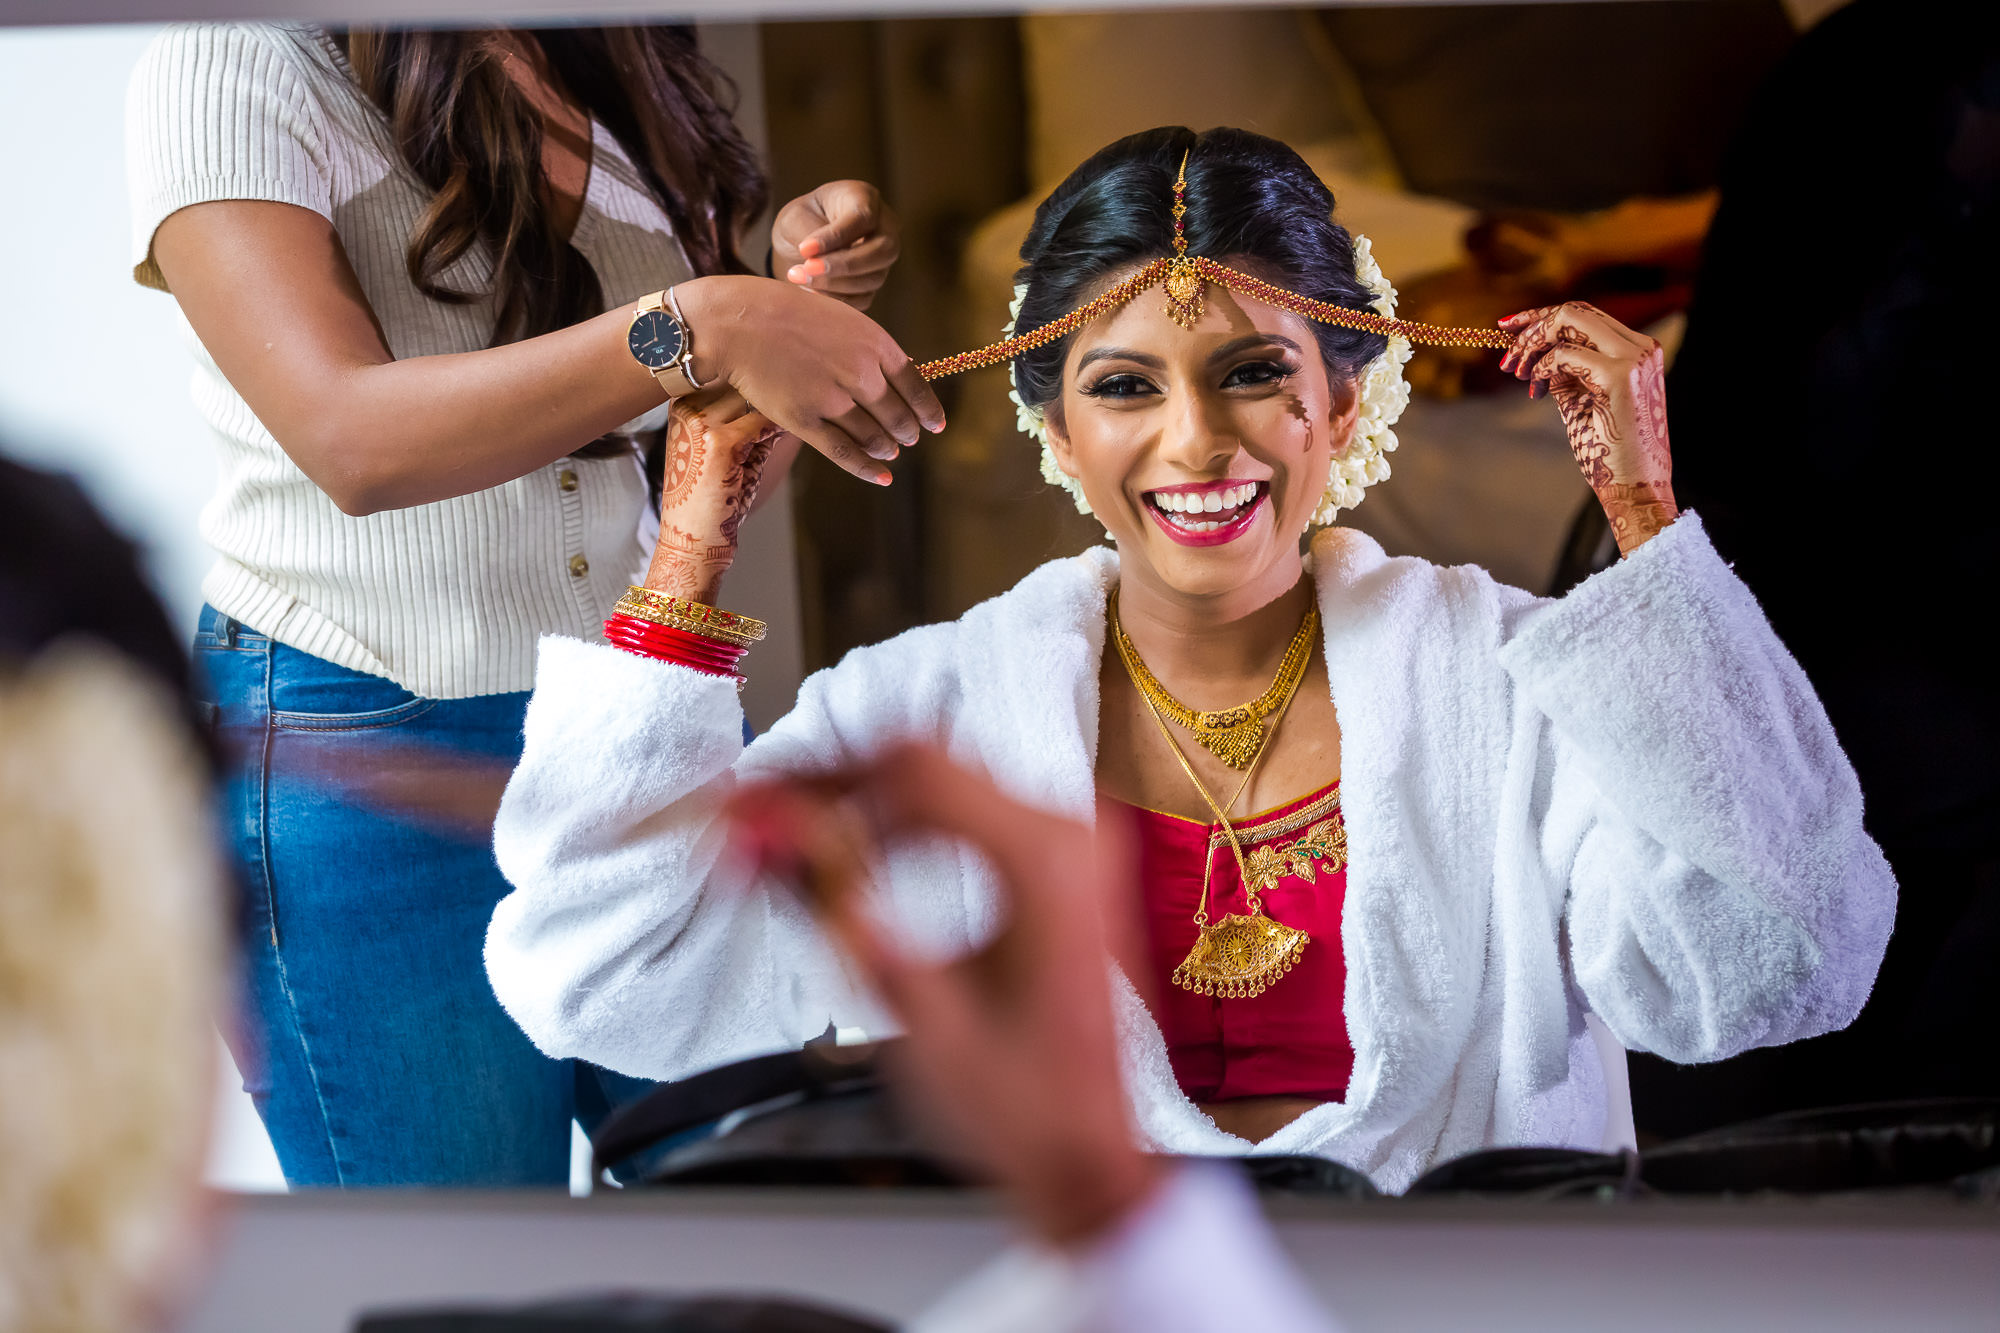 asian-wedding-hindu-tamil-photographer-heythorpe-oxford-0014.jpg